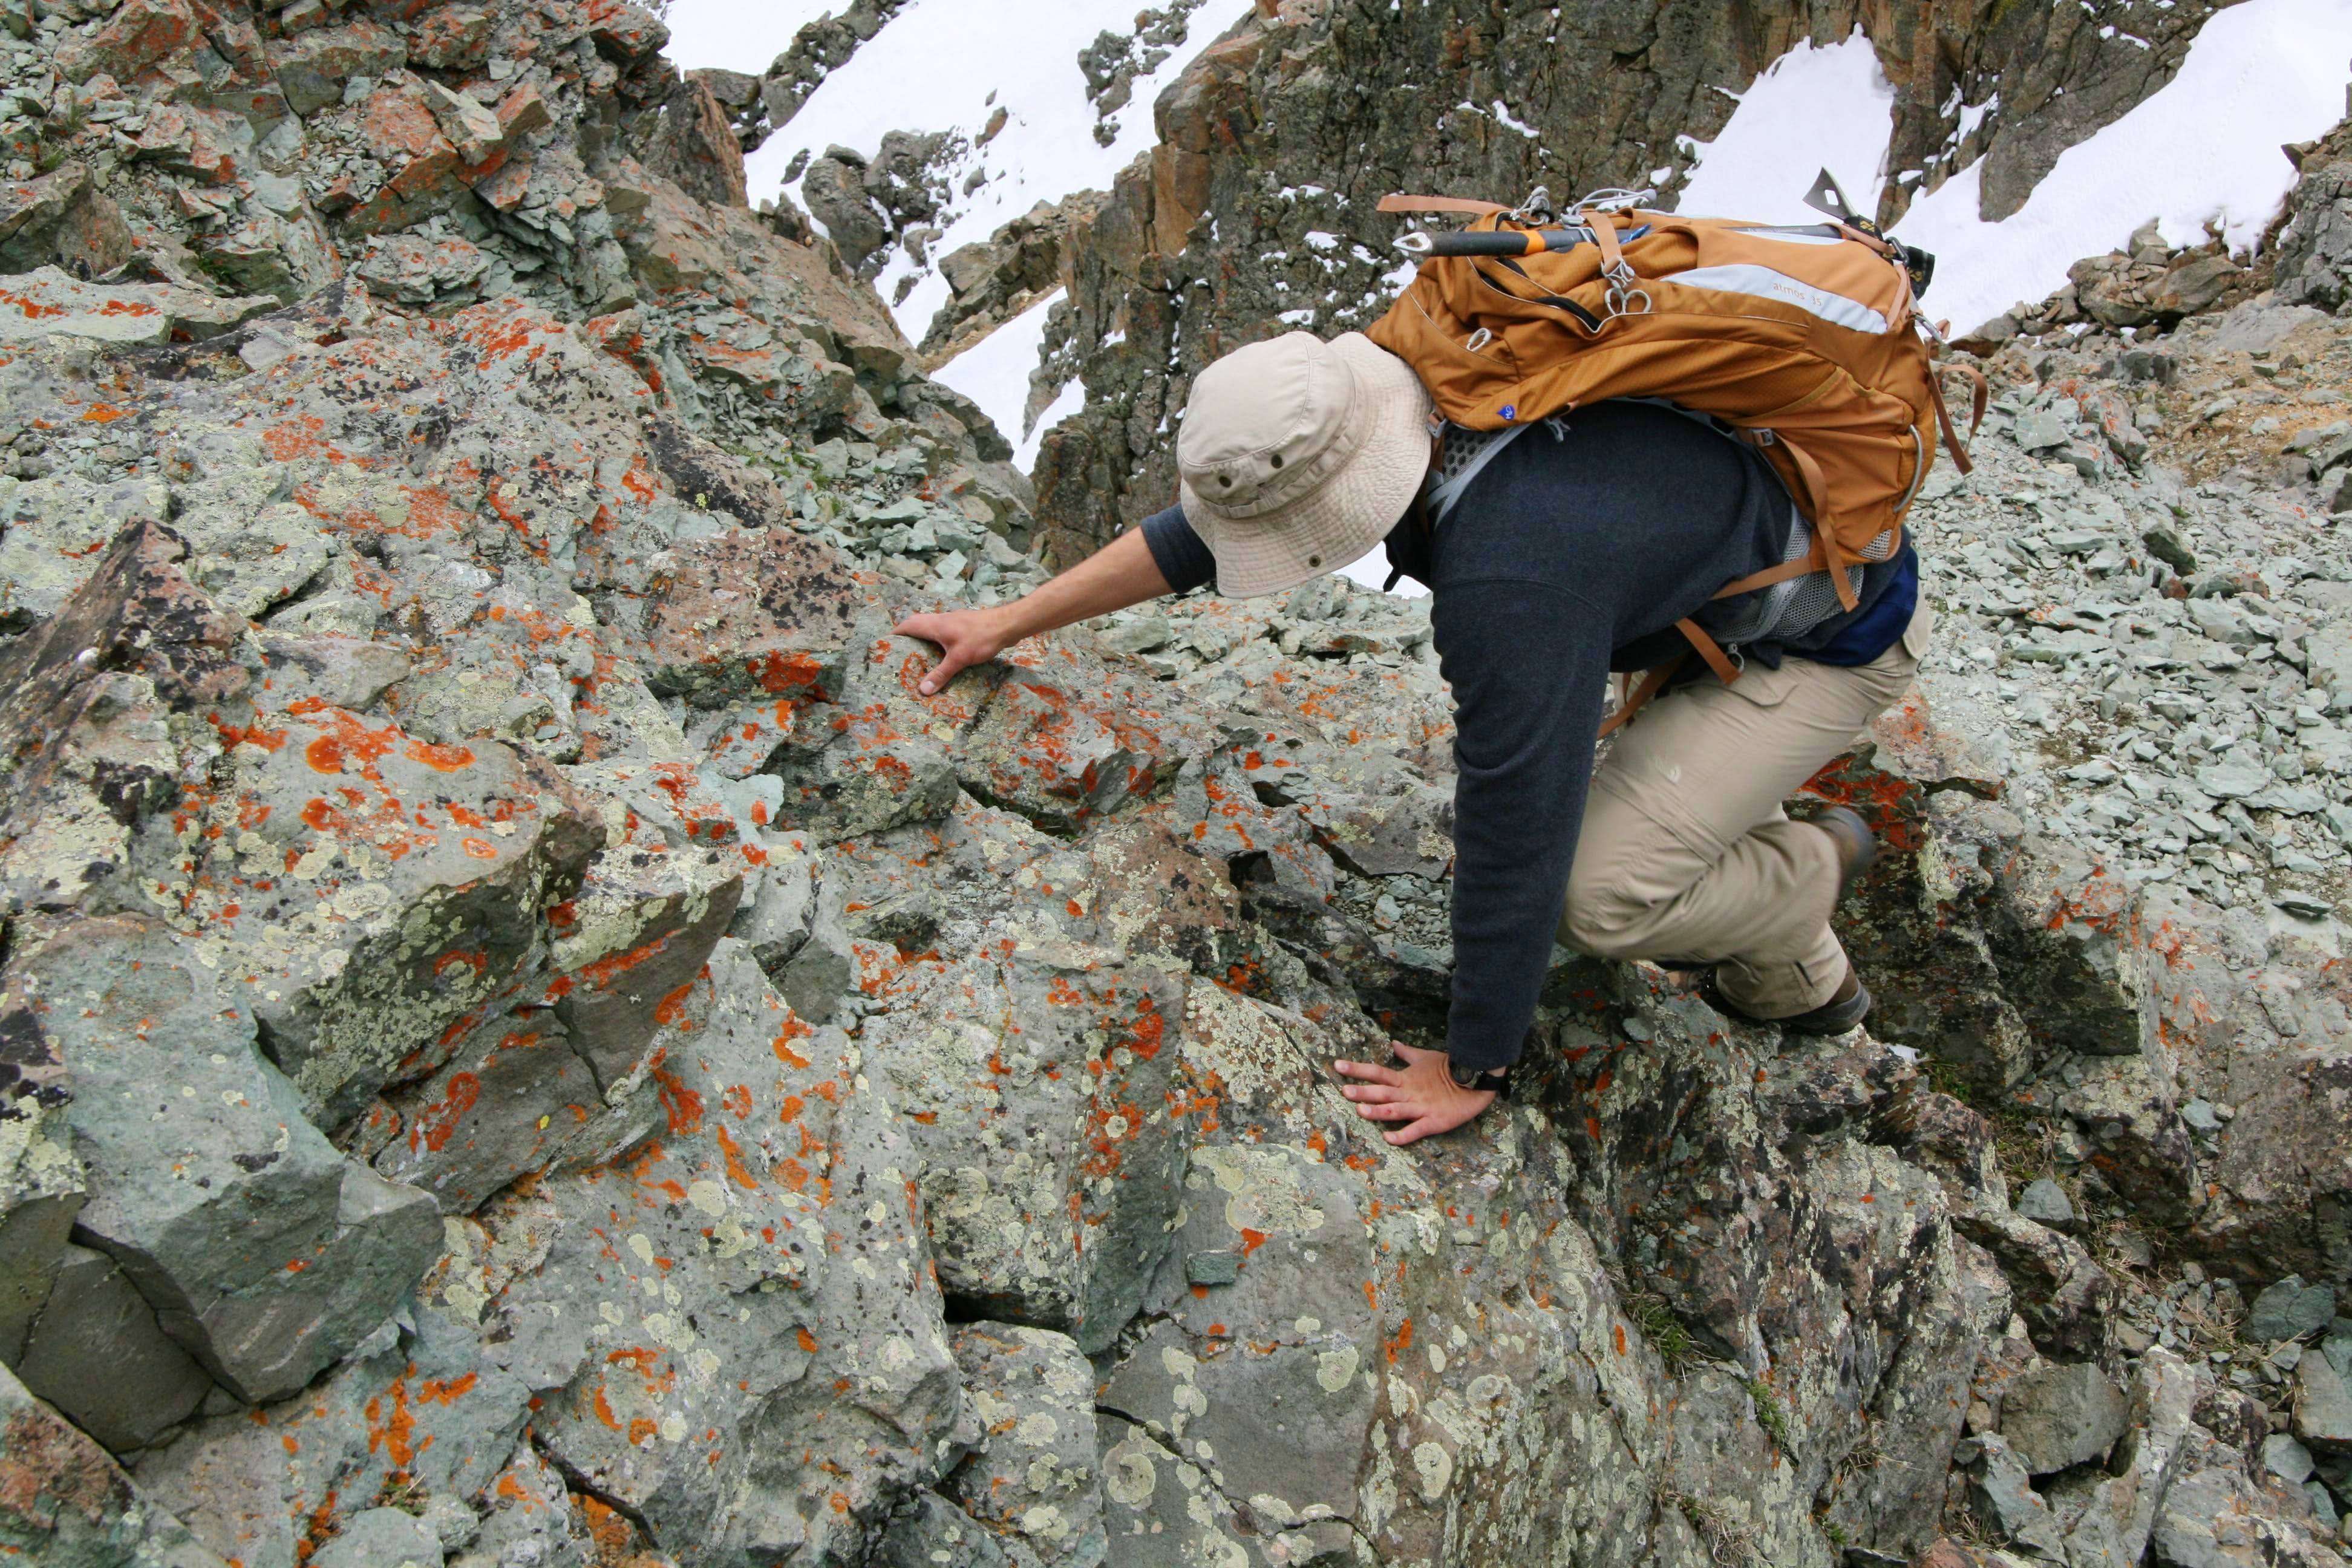 Chief Mountain-Brown Mountain-Kirwin Traverse